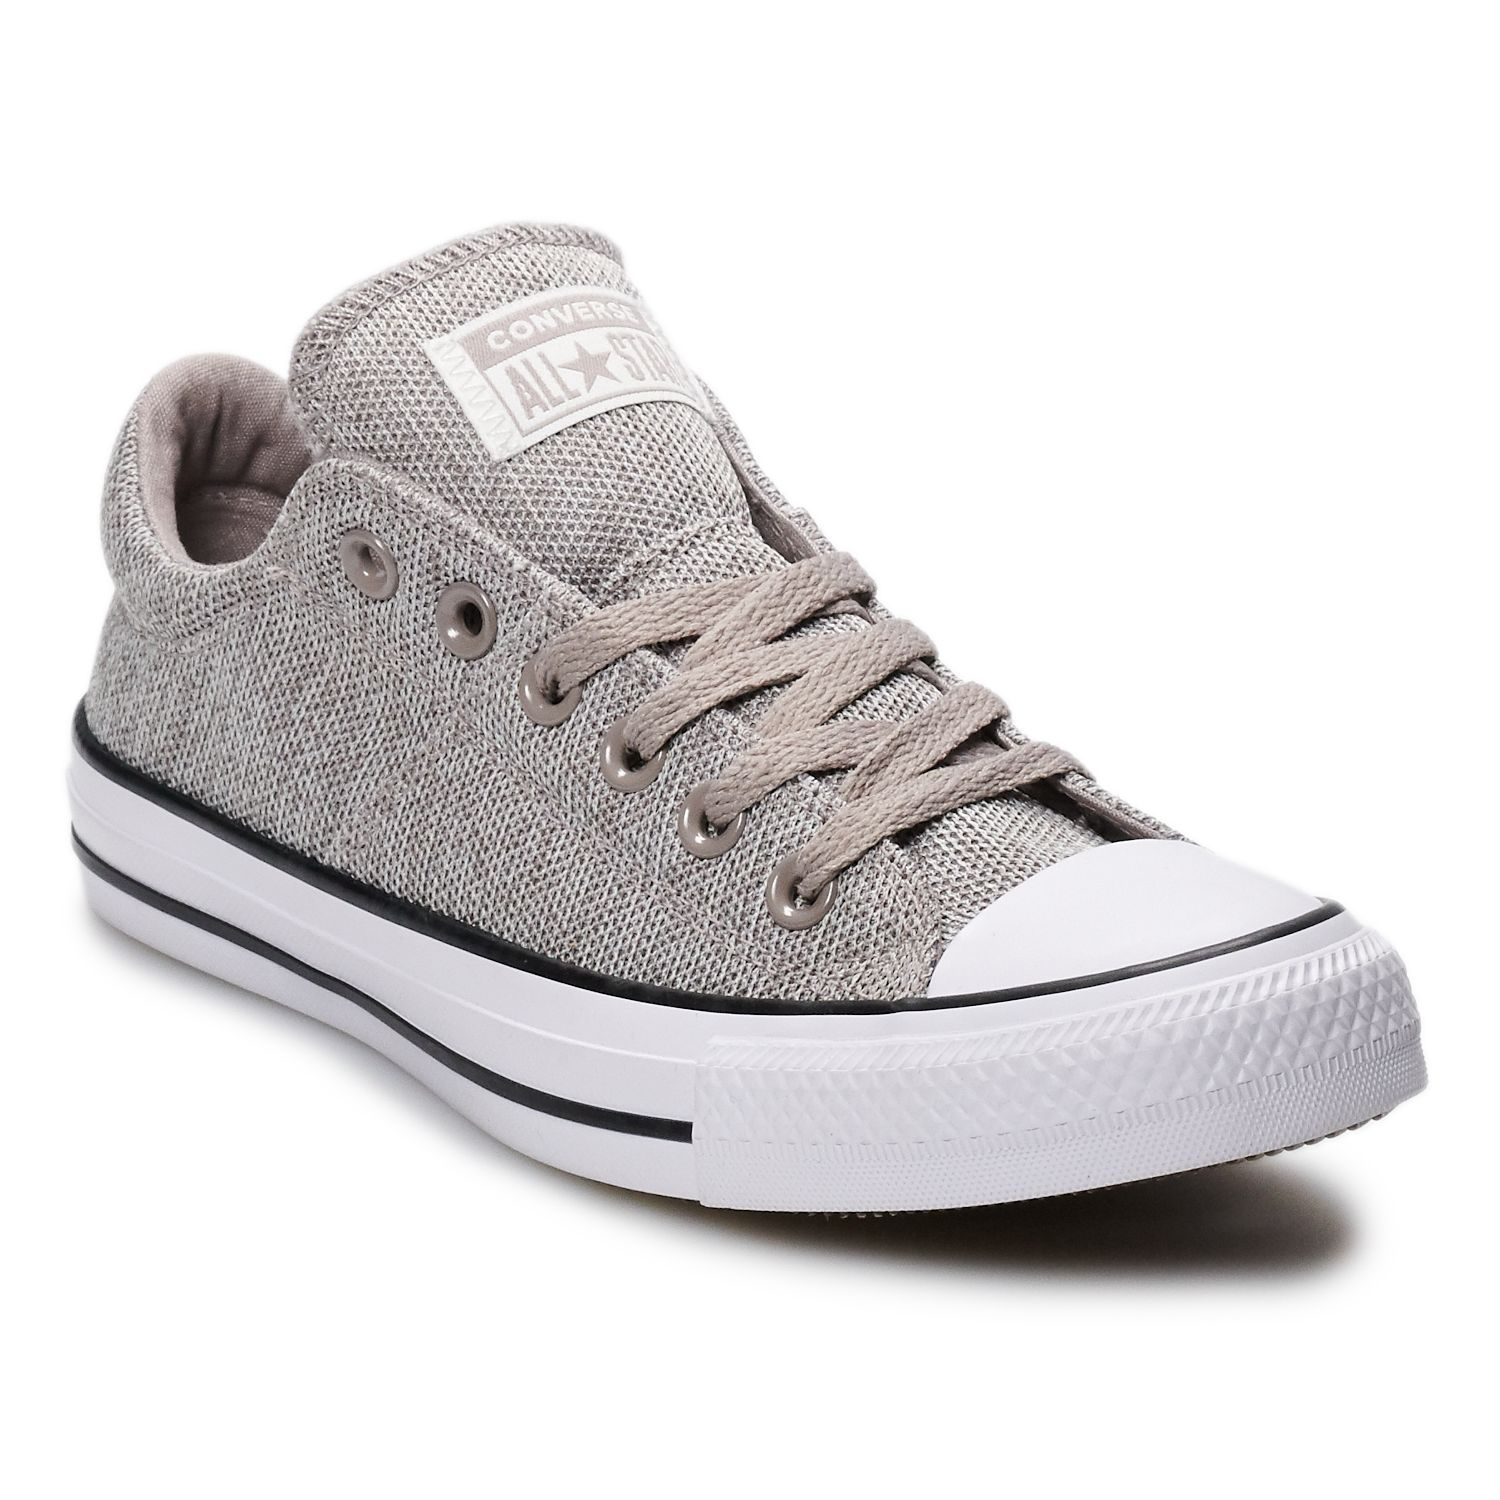 Gray Chuck Taylors Free Download • Oasis-dl.co 0190c8931